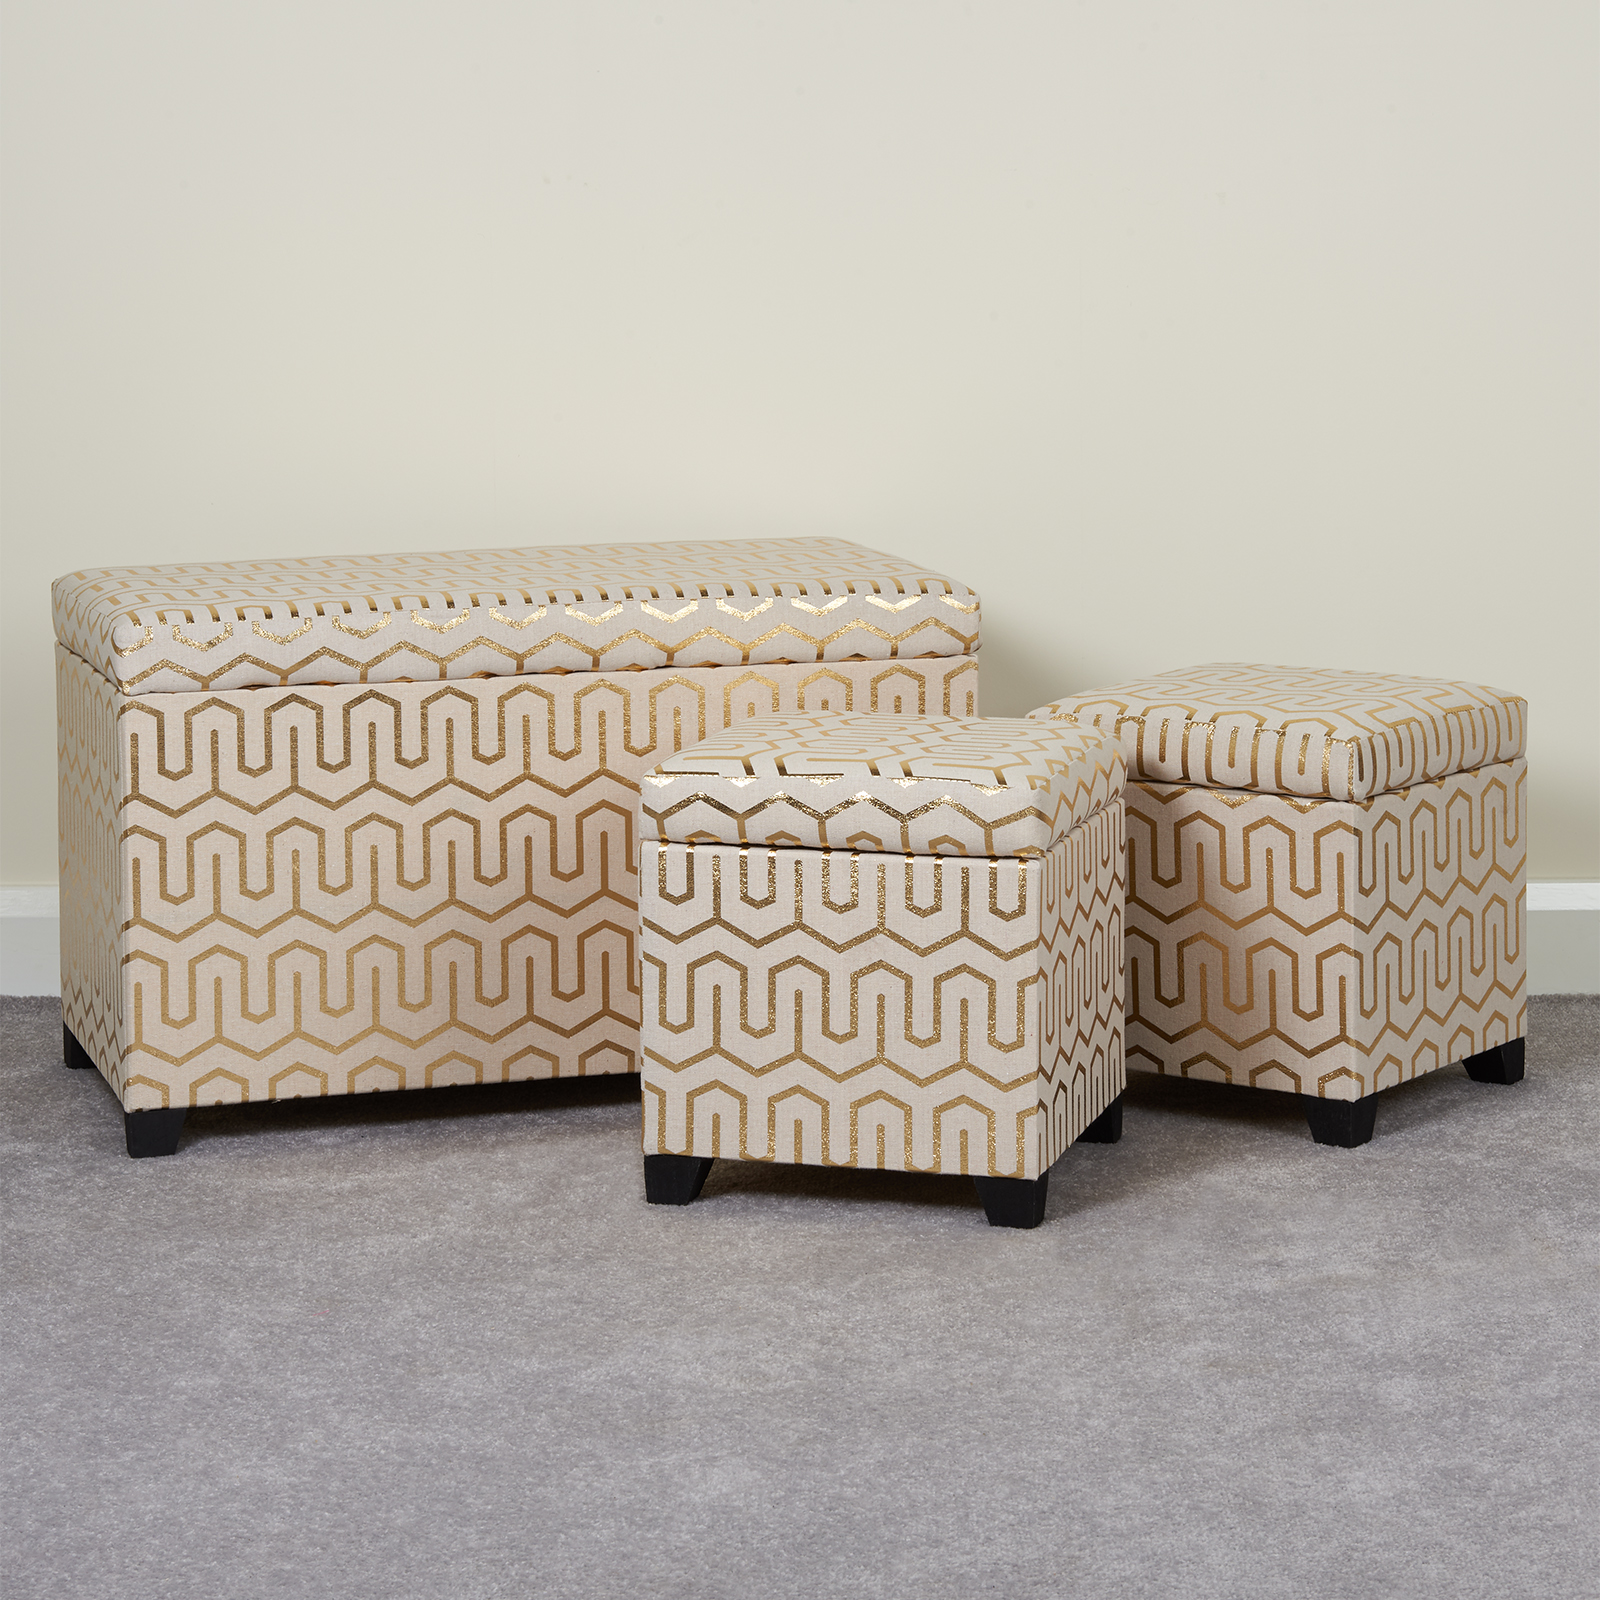 Ottomans Deacon Beige Upholstered Blanket Box: Hartleys Gold Patterned Storage Ottomans Set Of 3 Ottoman